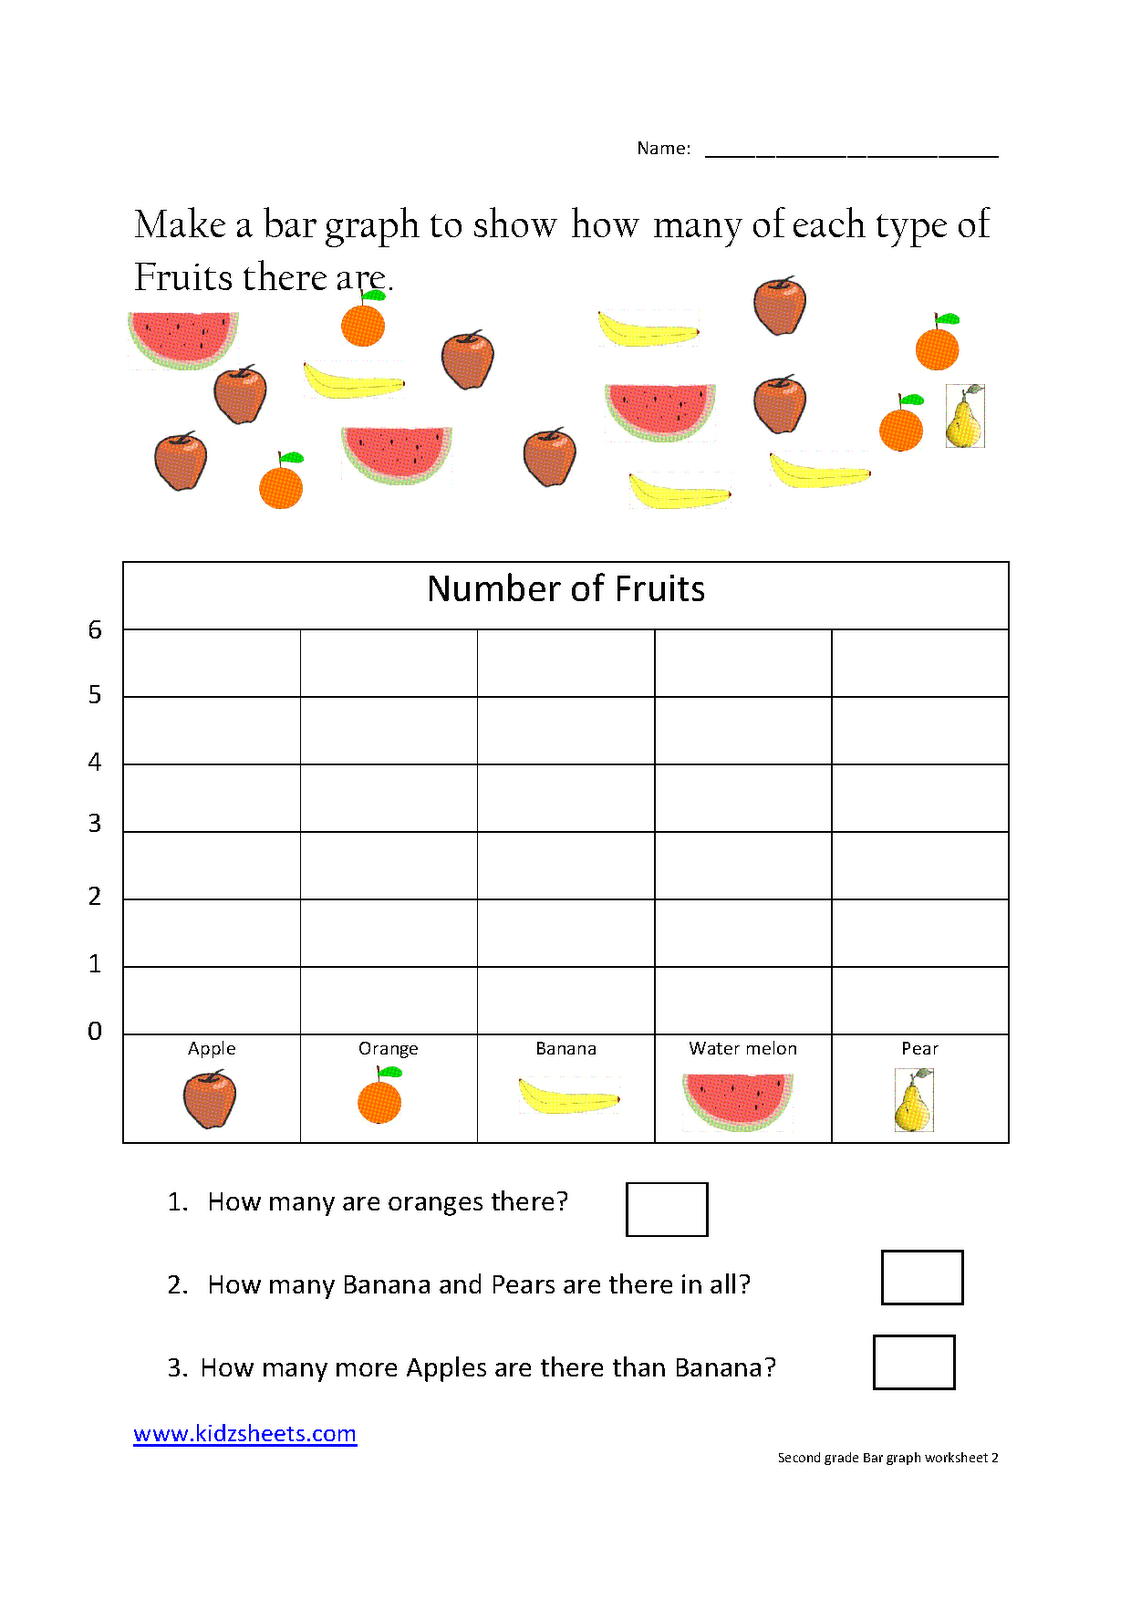 Worksheets Bar Graph Worksheets kidz worksheets second grade bar graph worksheet2 graph